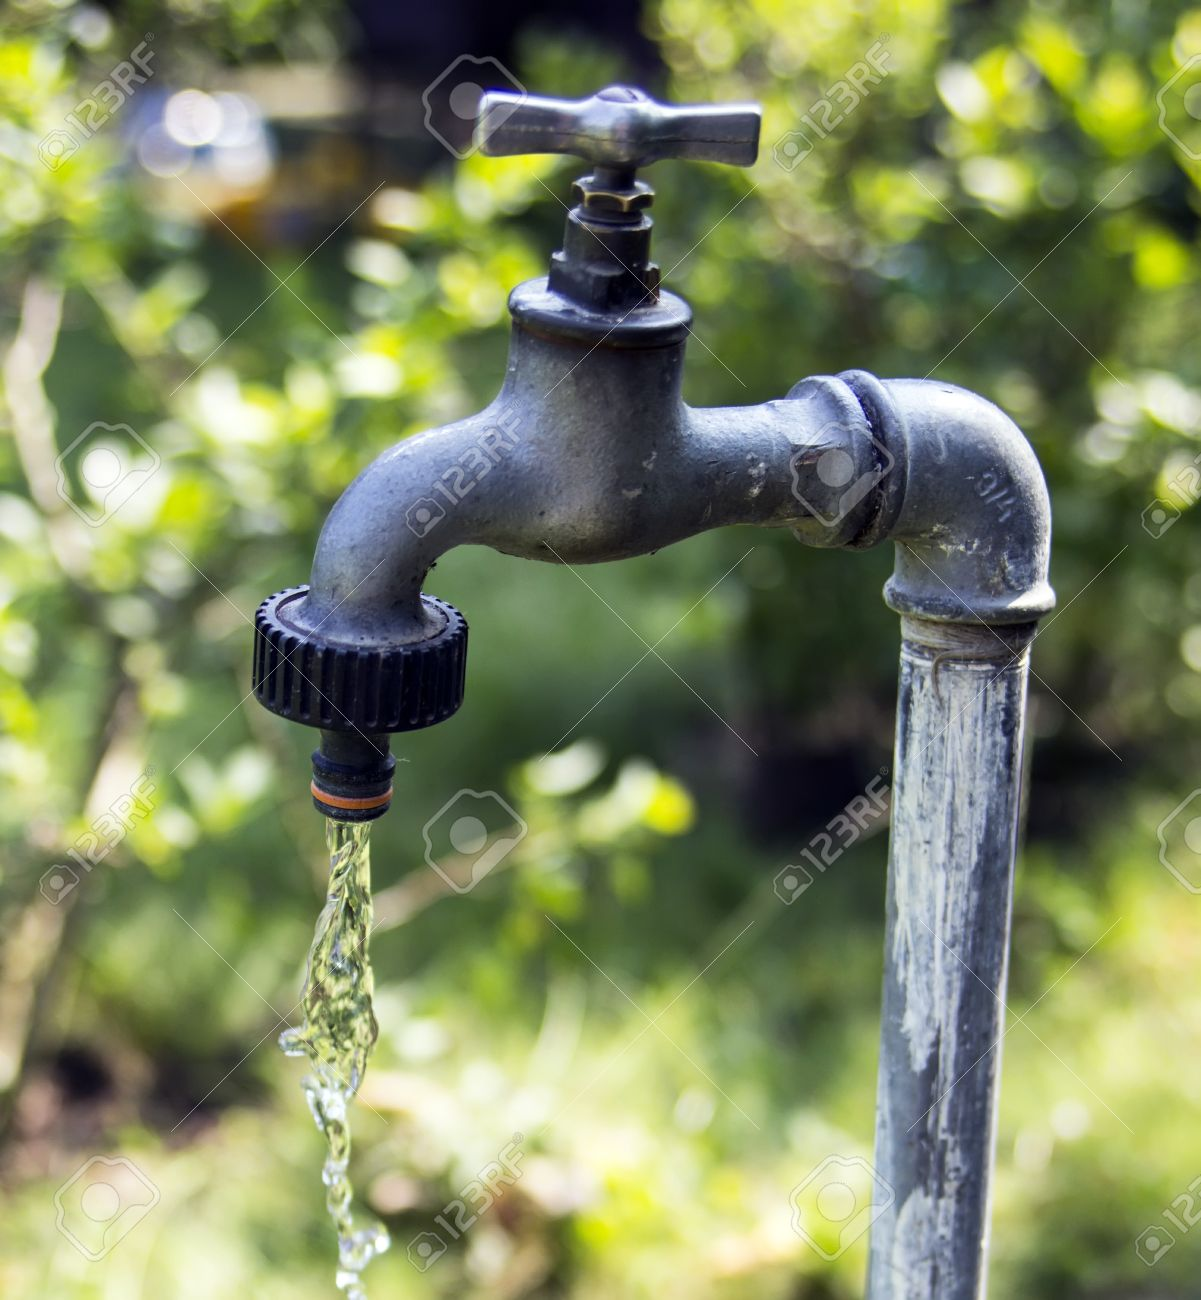 Old Garden Tap Leaking Water Stock Photo, Picture And Royalty Free ...